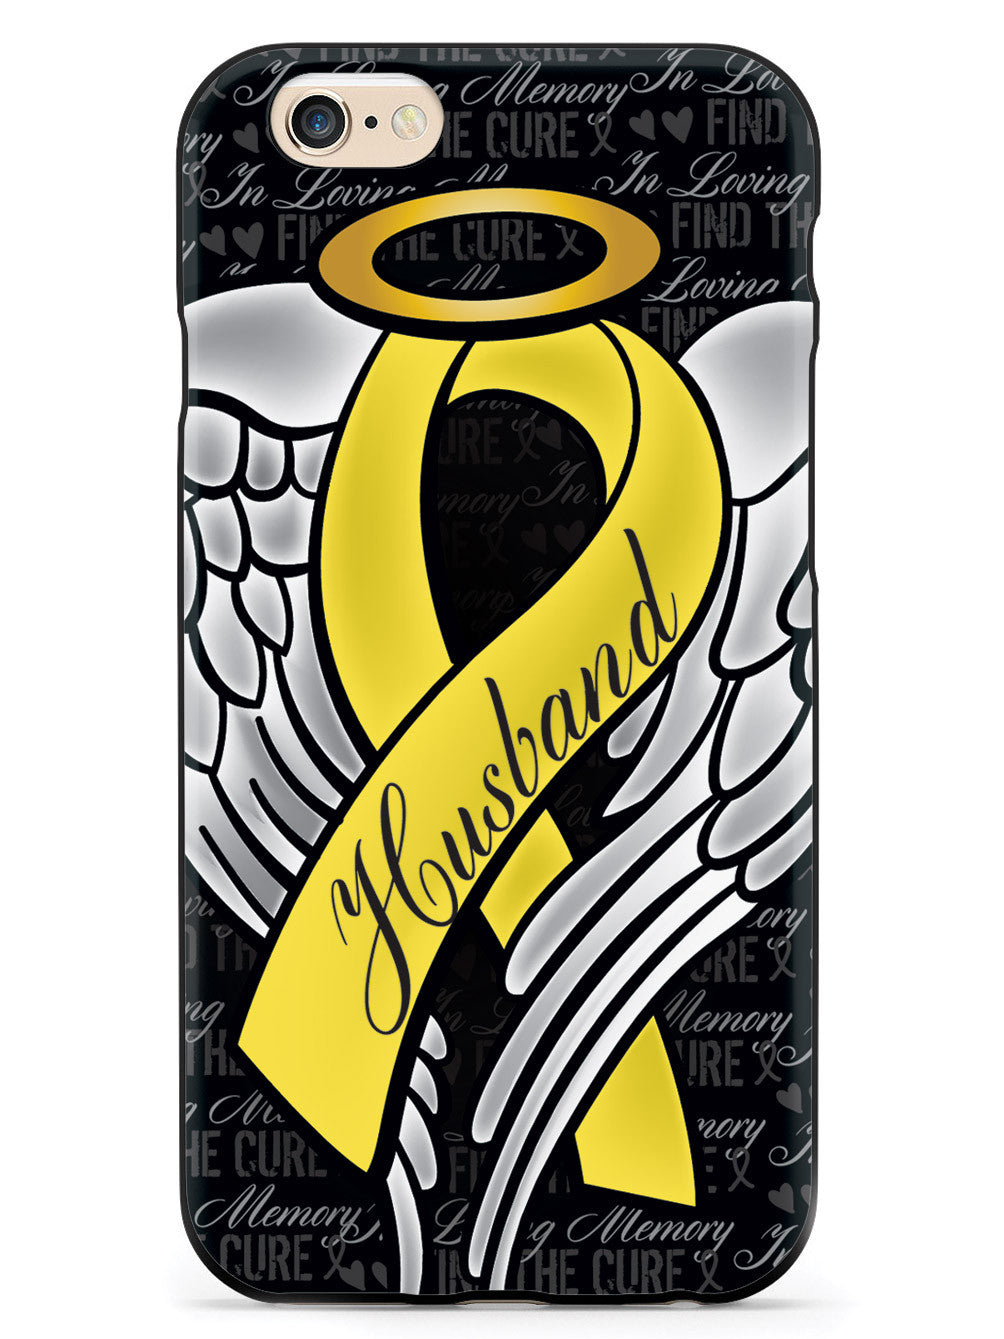 In Loving Memory of My Husband - Yellow Ribbon Case